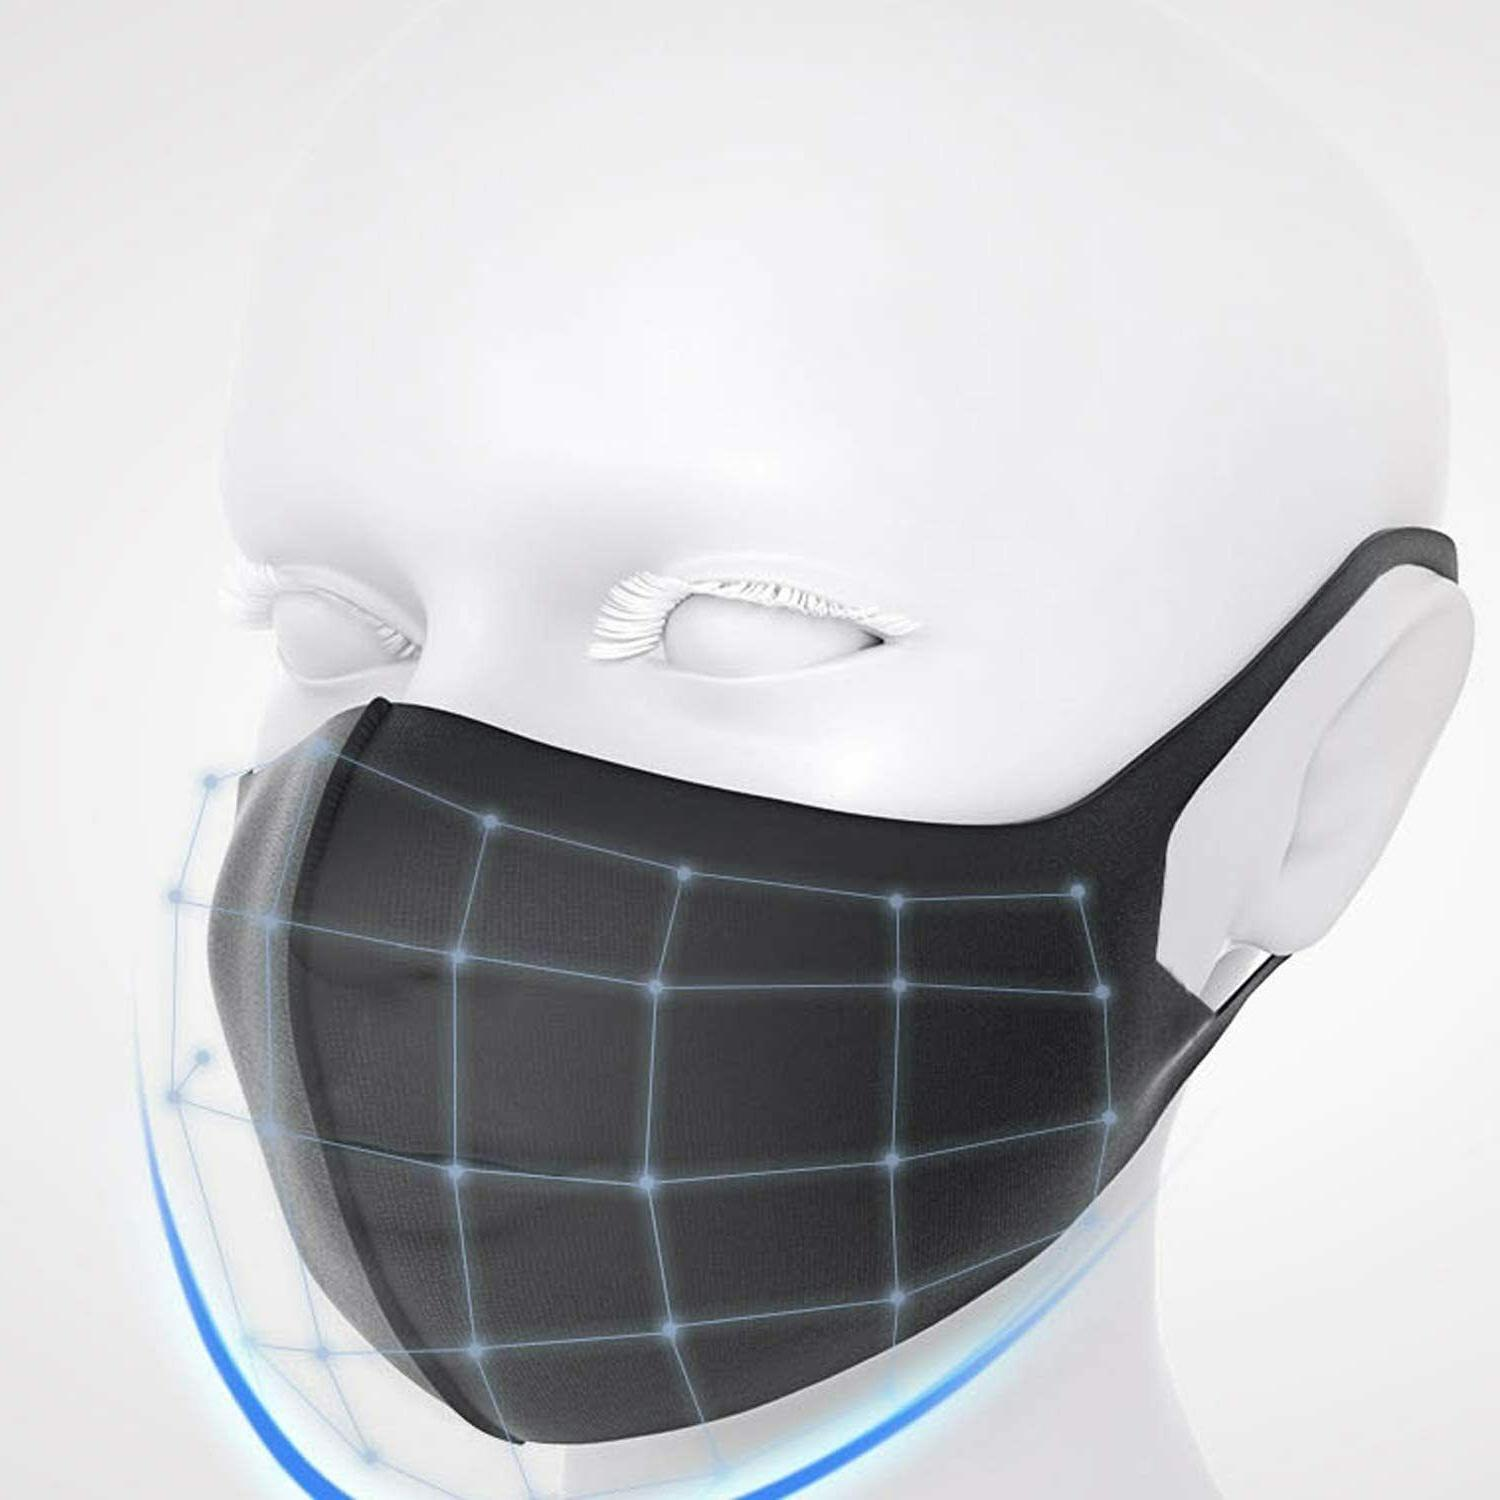 5-PACK Black Fashion Mask Adult IN USA